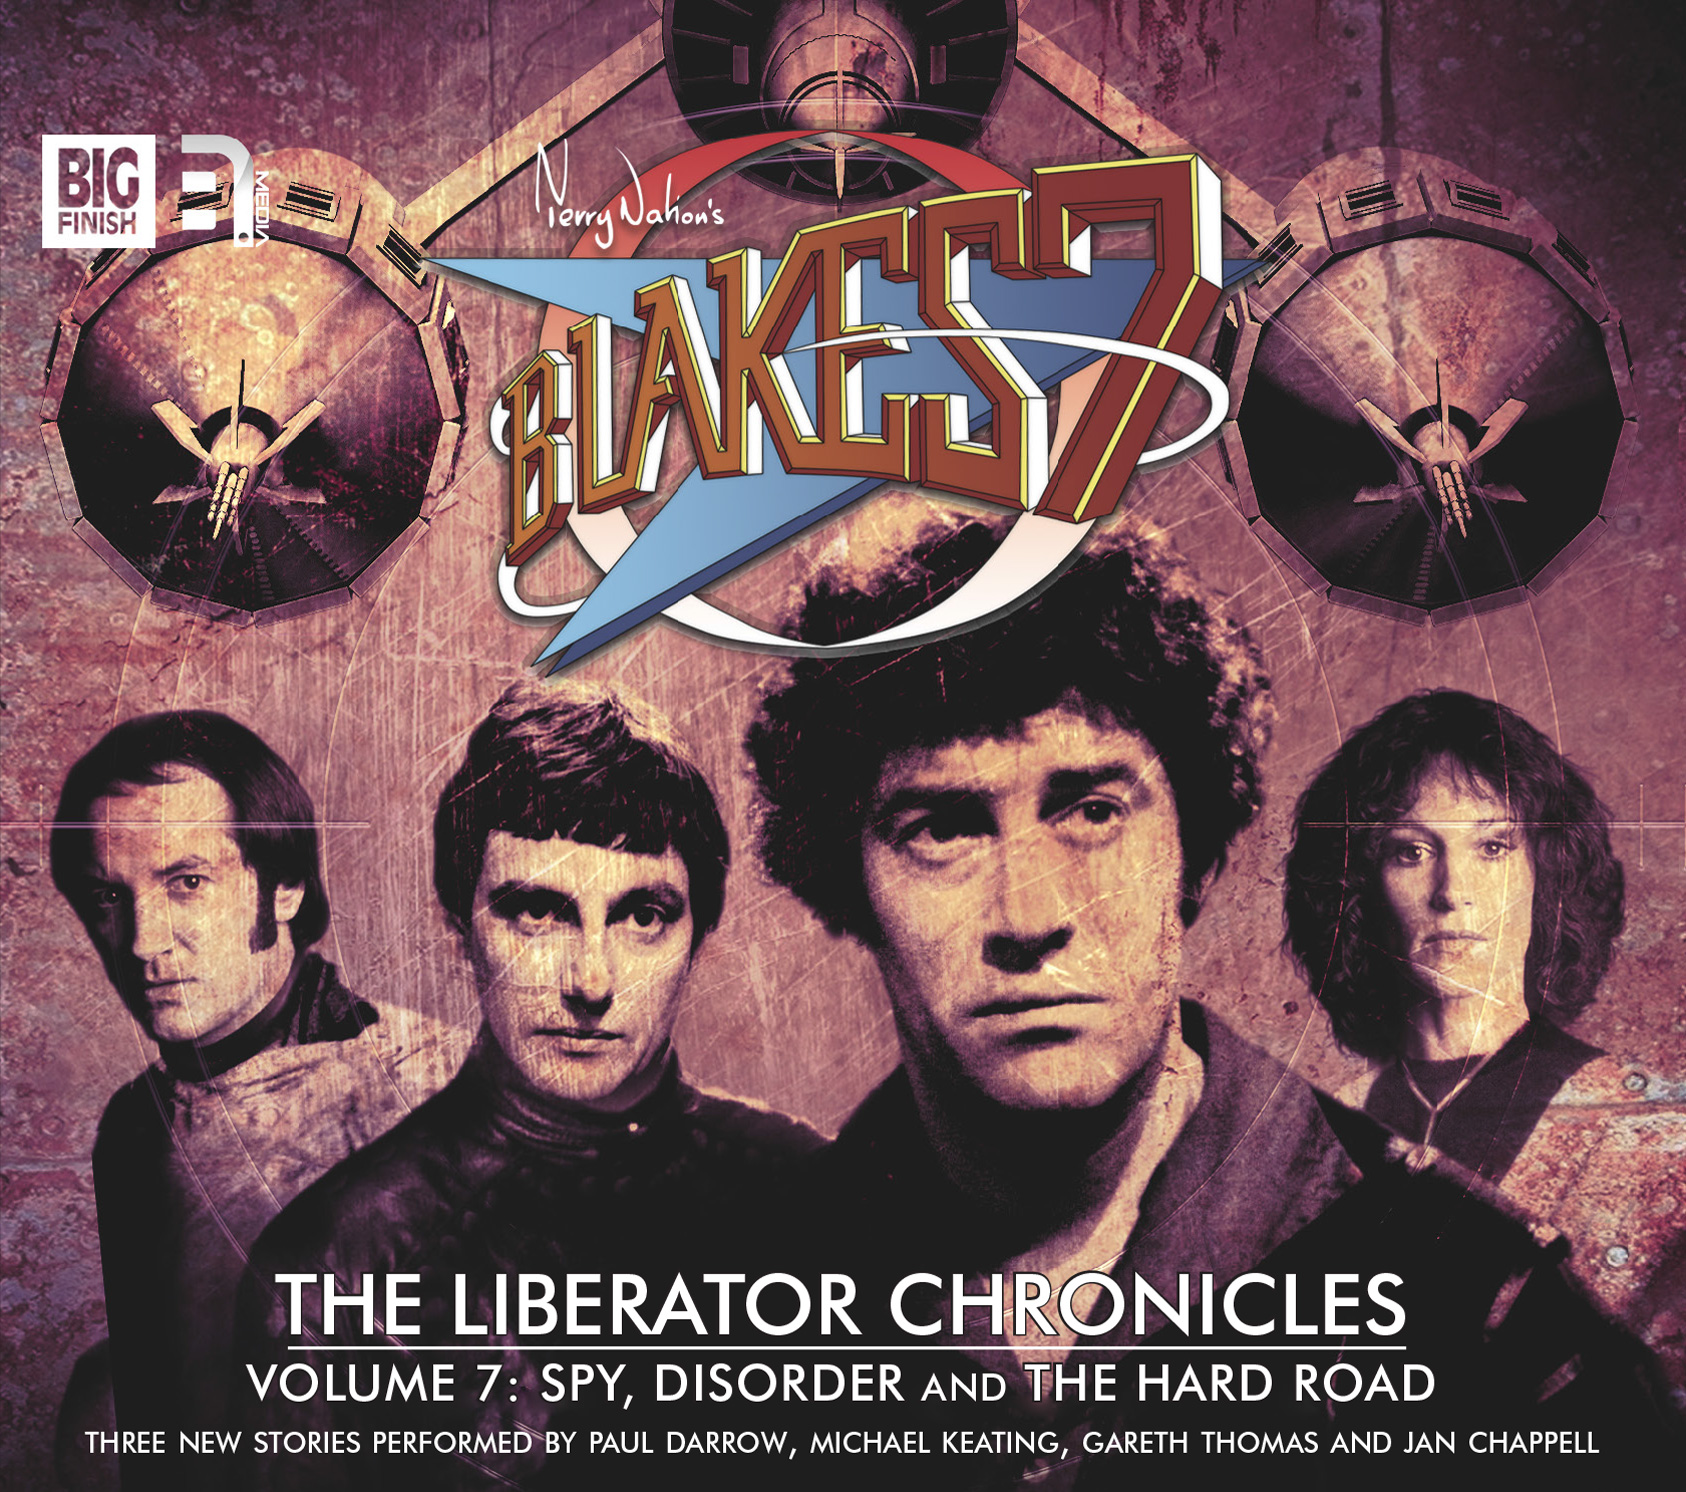 LIBERATOR CHRONICLES VOL 7